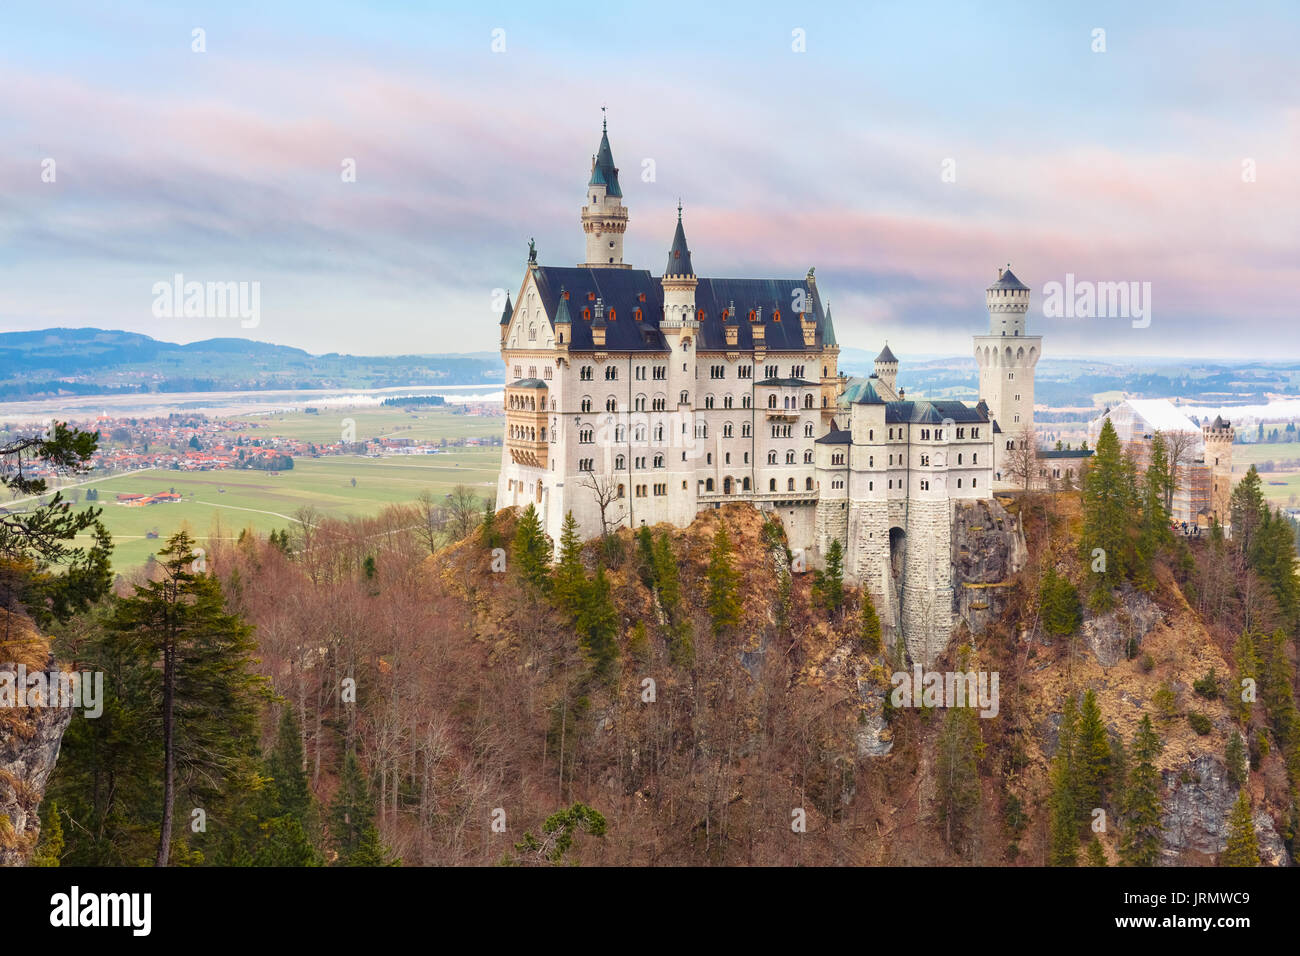 Fairytale Neuschwanstein Castle, Bavaria, Germany - Stock Image